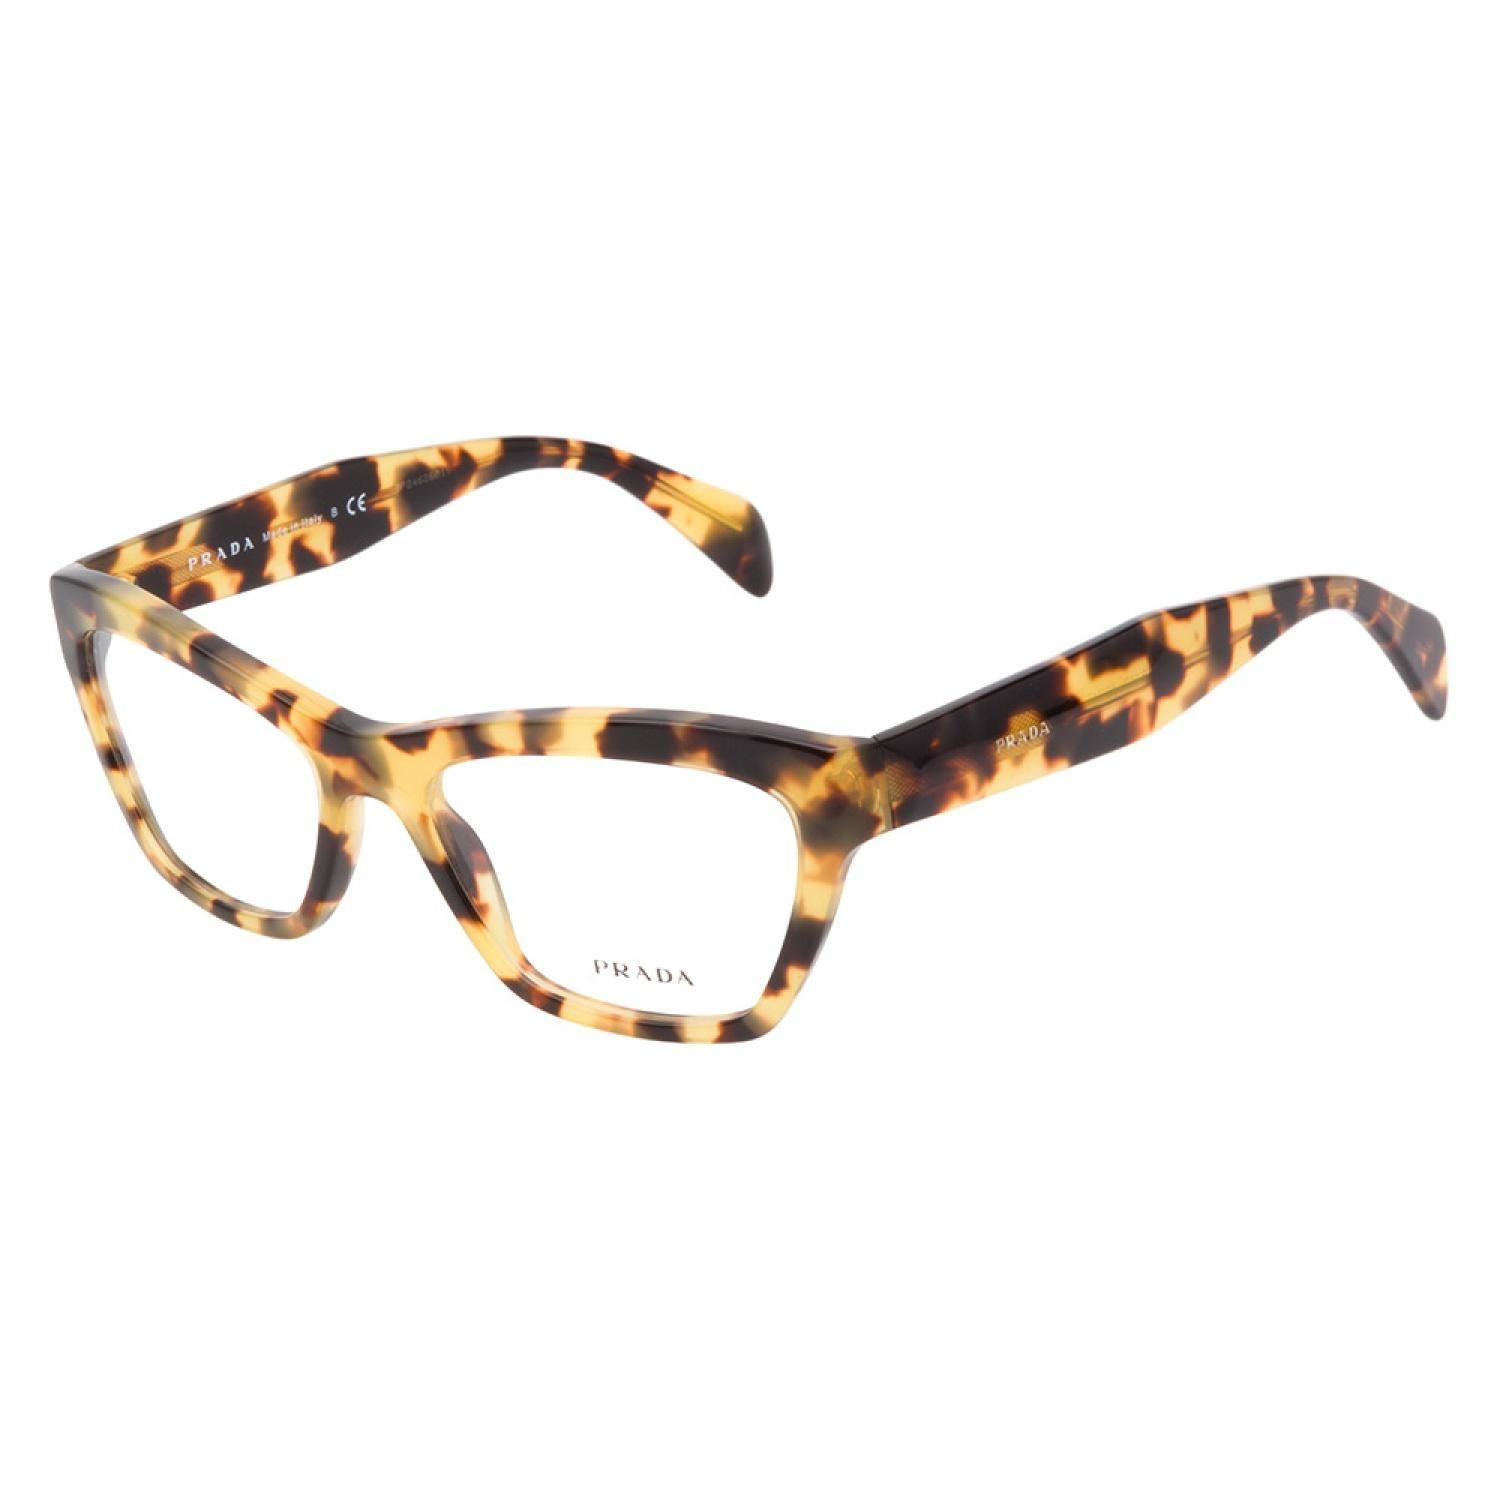 156089ac5d4c Prada VPR14Q 7S01O1 eyeglasses blend trendy, thick tortoiseshell with a  cateye shape for a glamorous and contemporary look ideal versatile enough  for 199.00